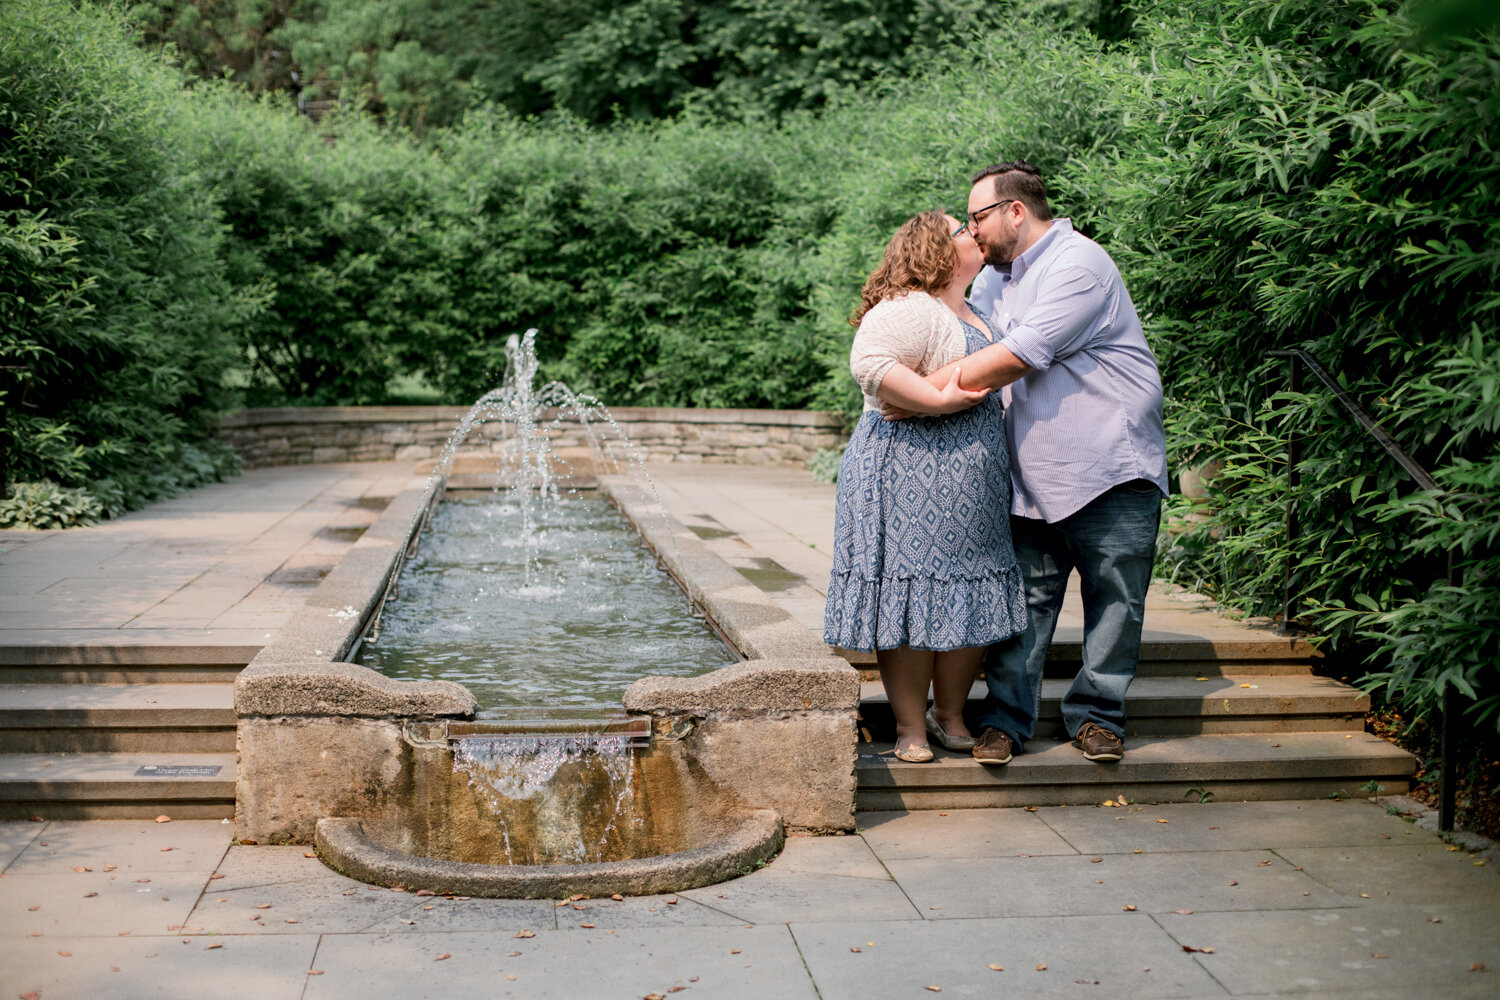 morris-arboretum-chestnut-hill-garden-engagement-session-philadelphia-wedding-photography-5.jpg